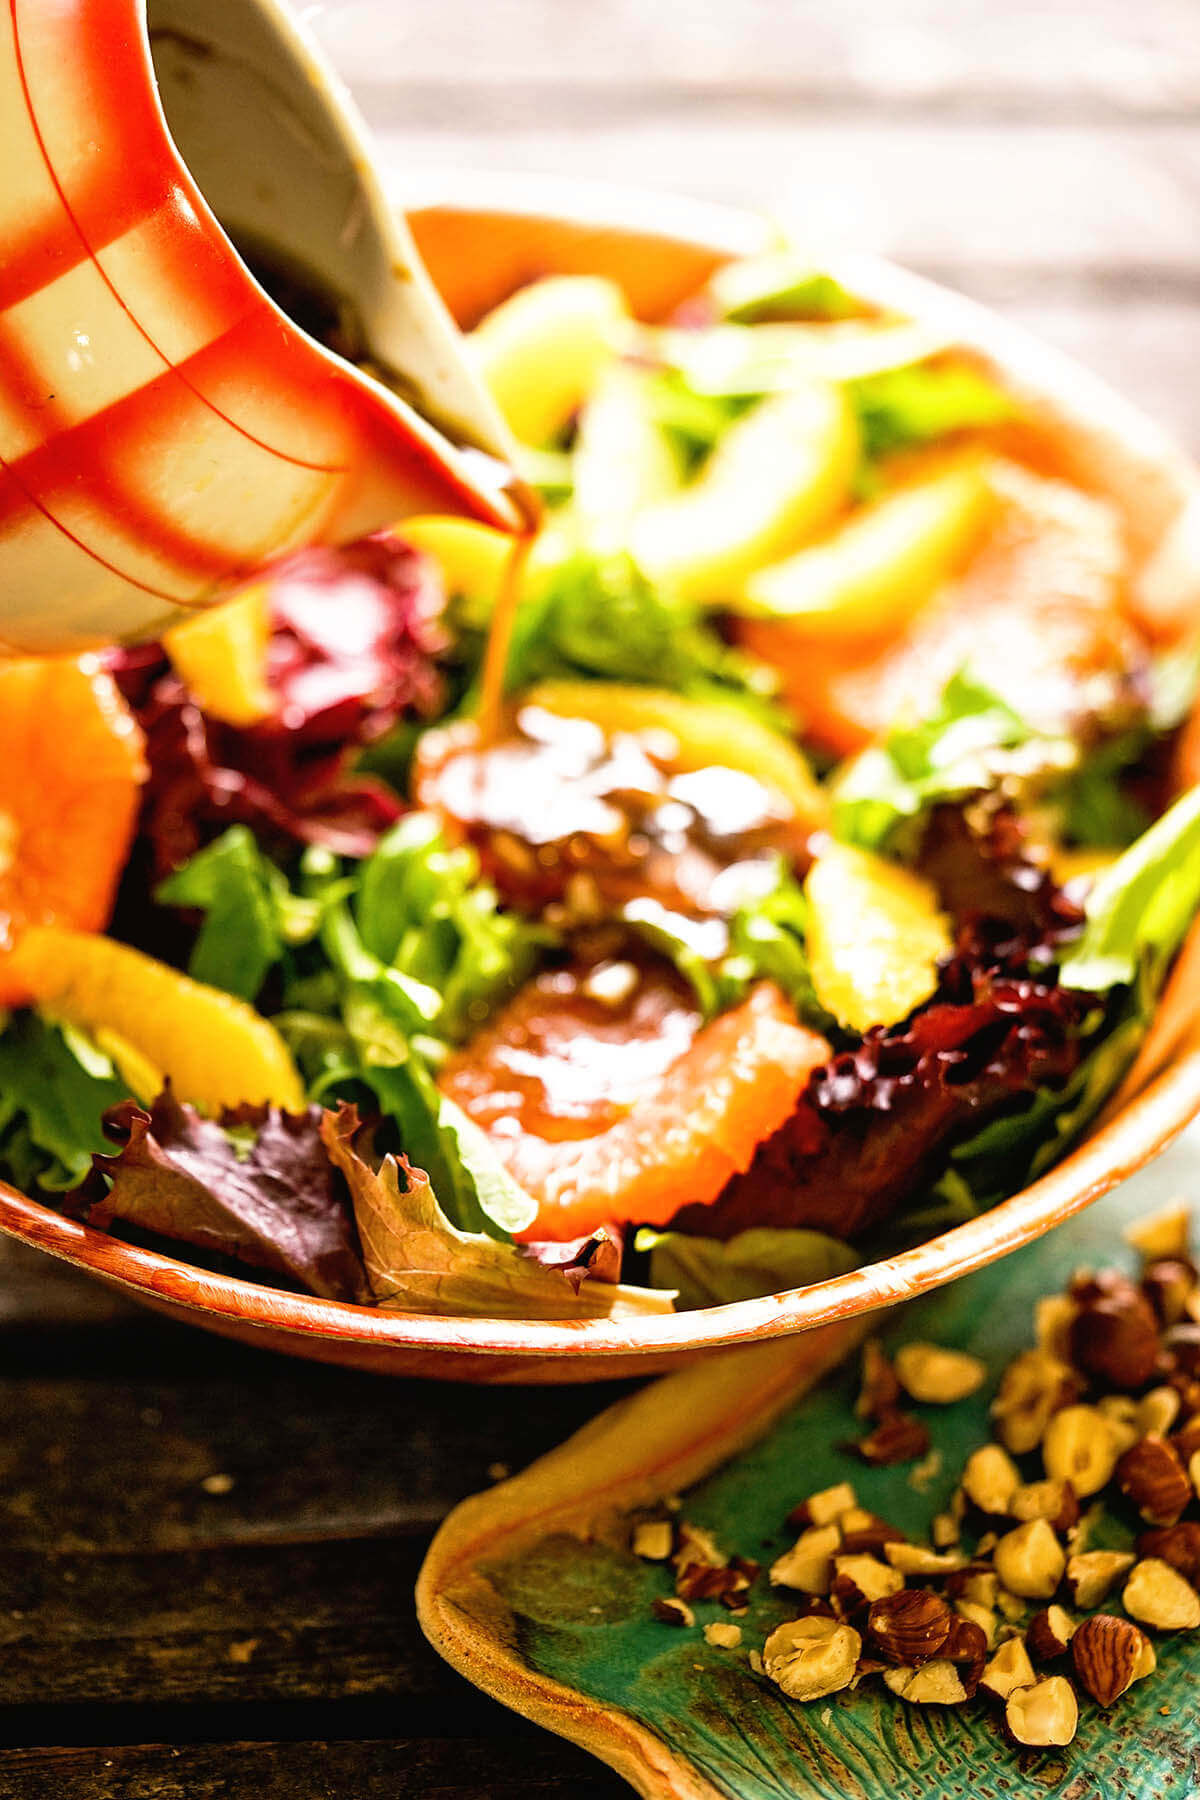 Citrus Salad Recipe topped with orange slices, nuts and homemade salad dressing.